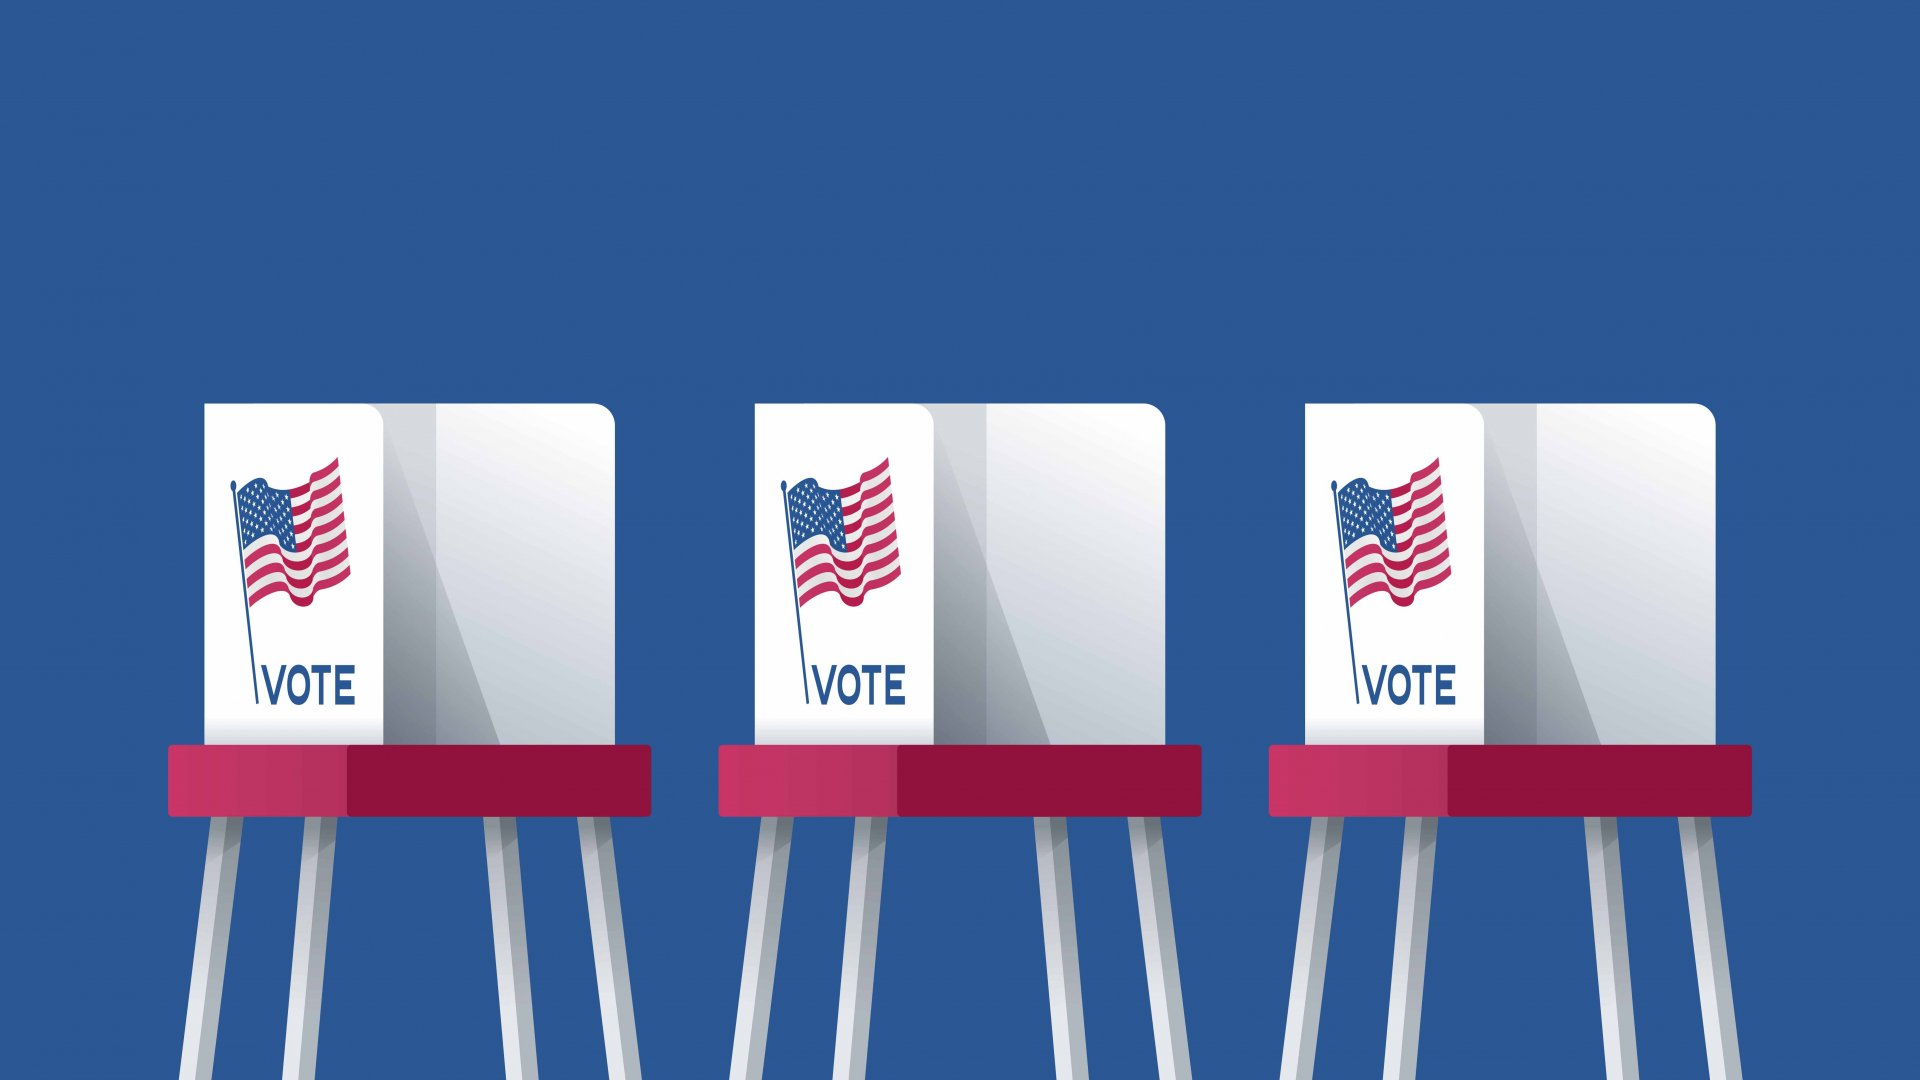 3 Ways for Small-Business Owners to Make Their Vote Count